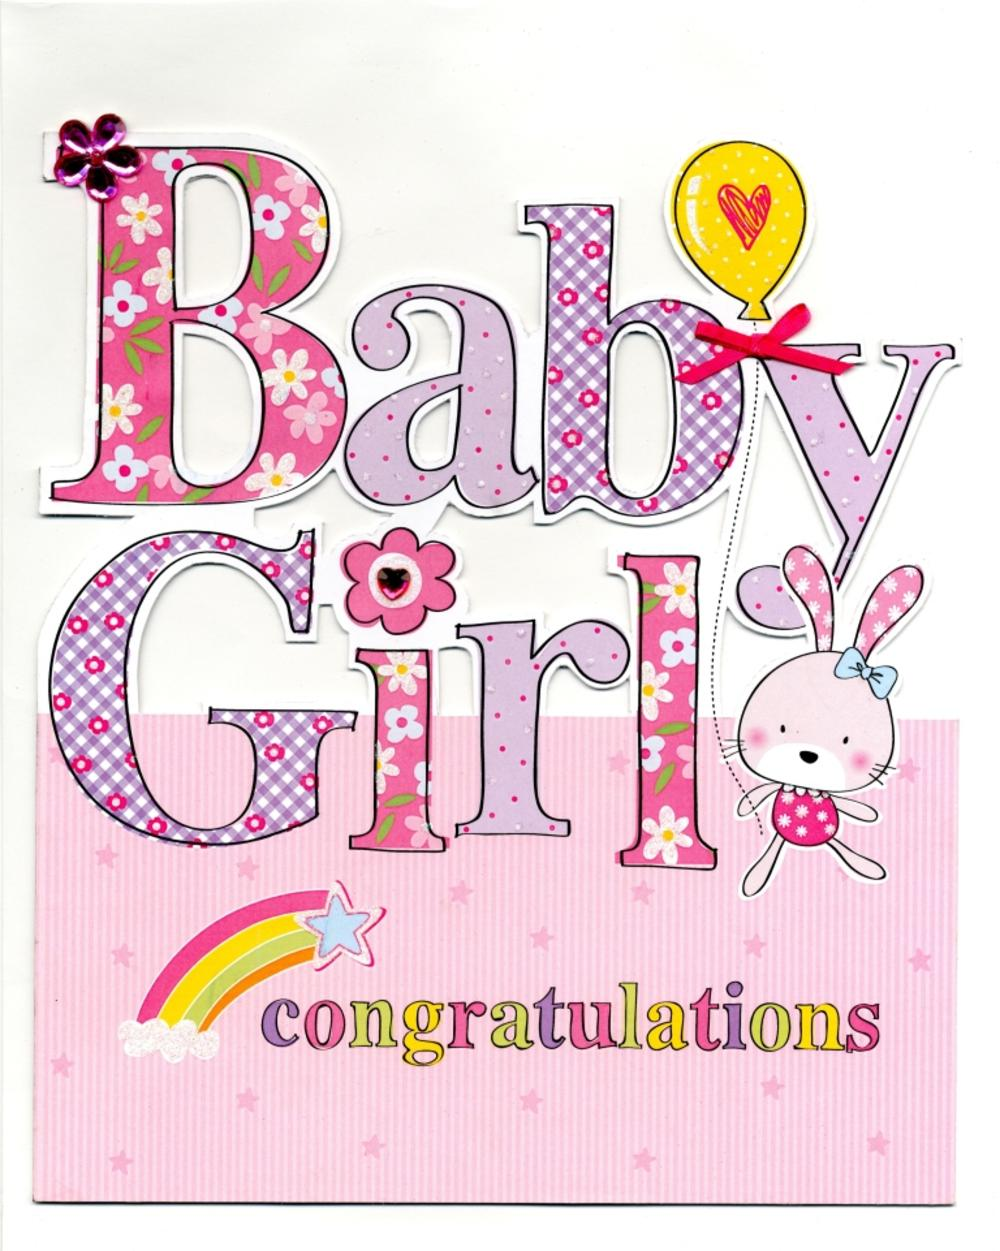 Congenial Large New Baby Girl Congratulations Greeting Card Large New Baby Girl Congratulations Greeting Card Cards Love Kates Congratulations Baby Girl Pics Congratulations Baby Girl Balloons baby shower Congratulations Baby Girl